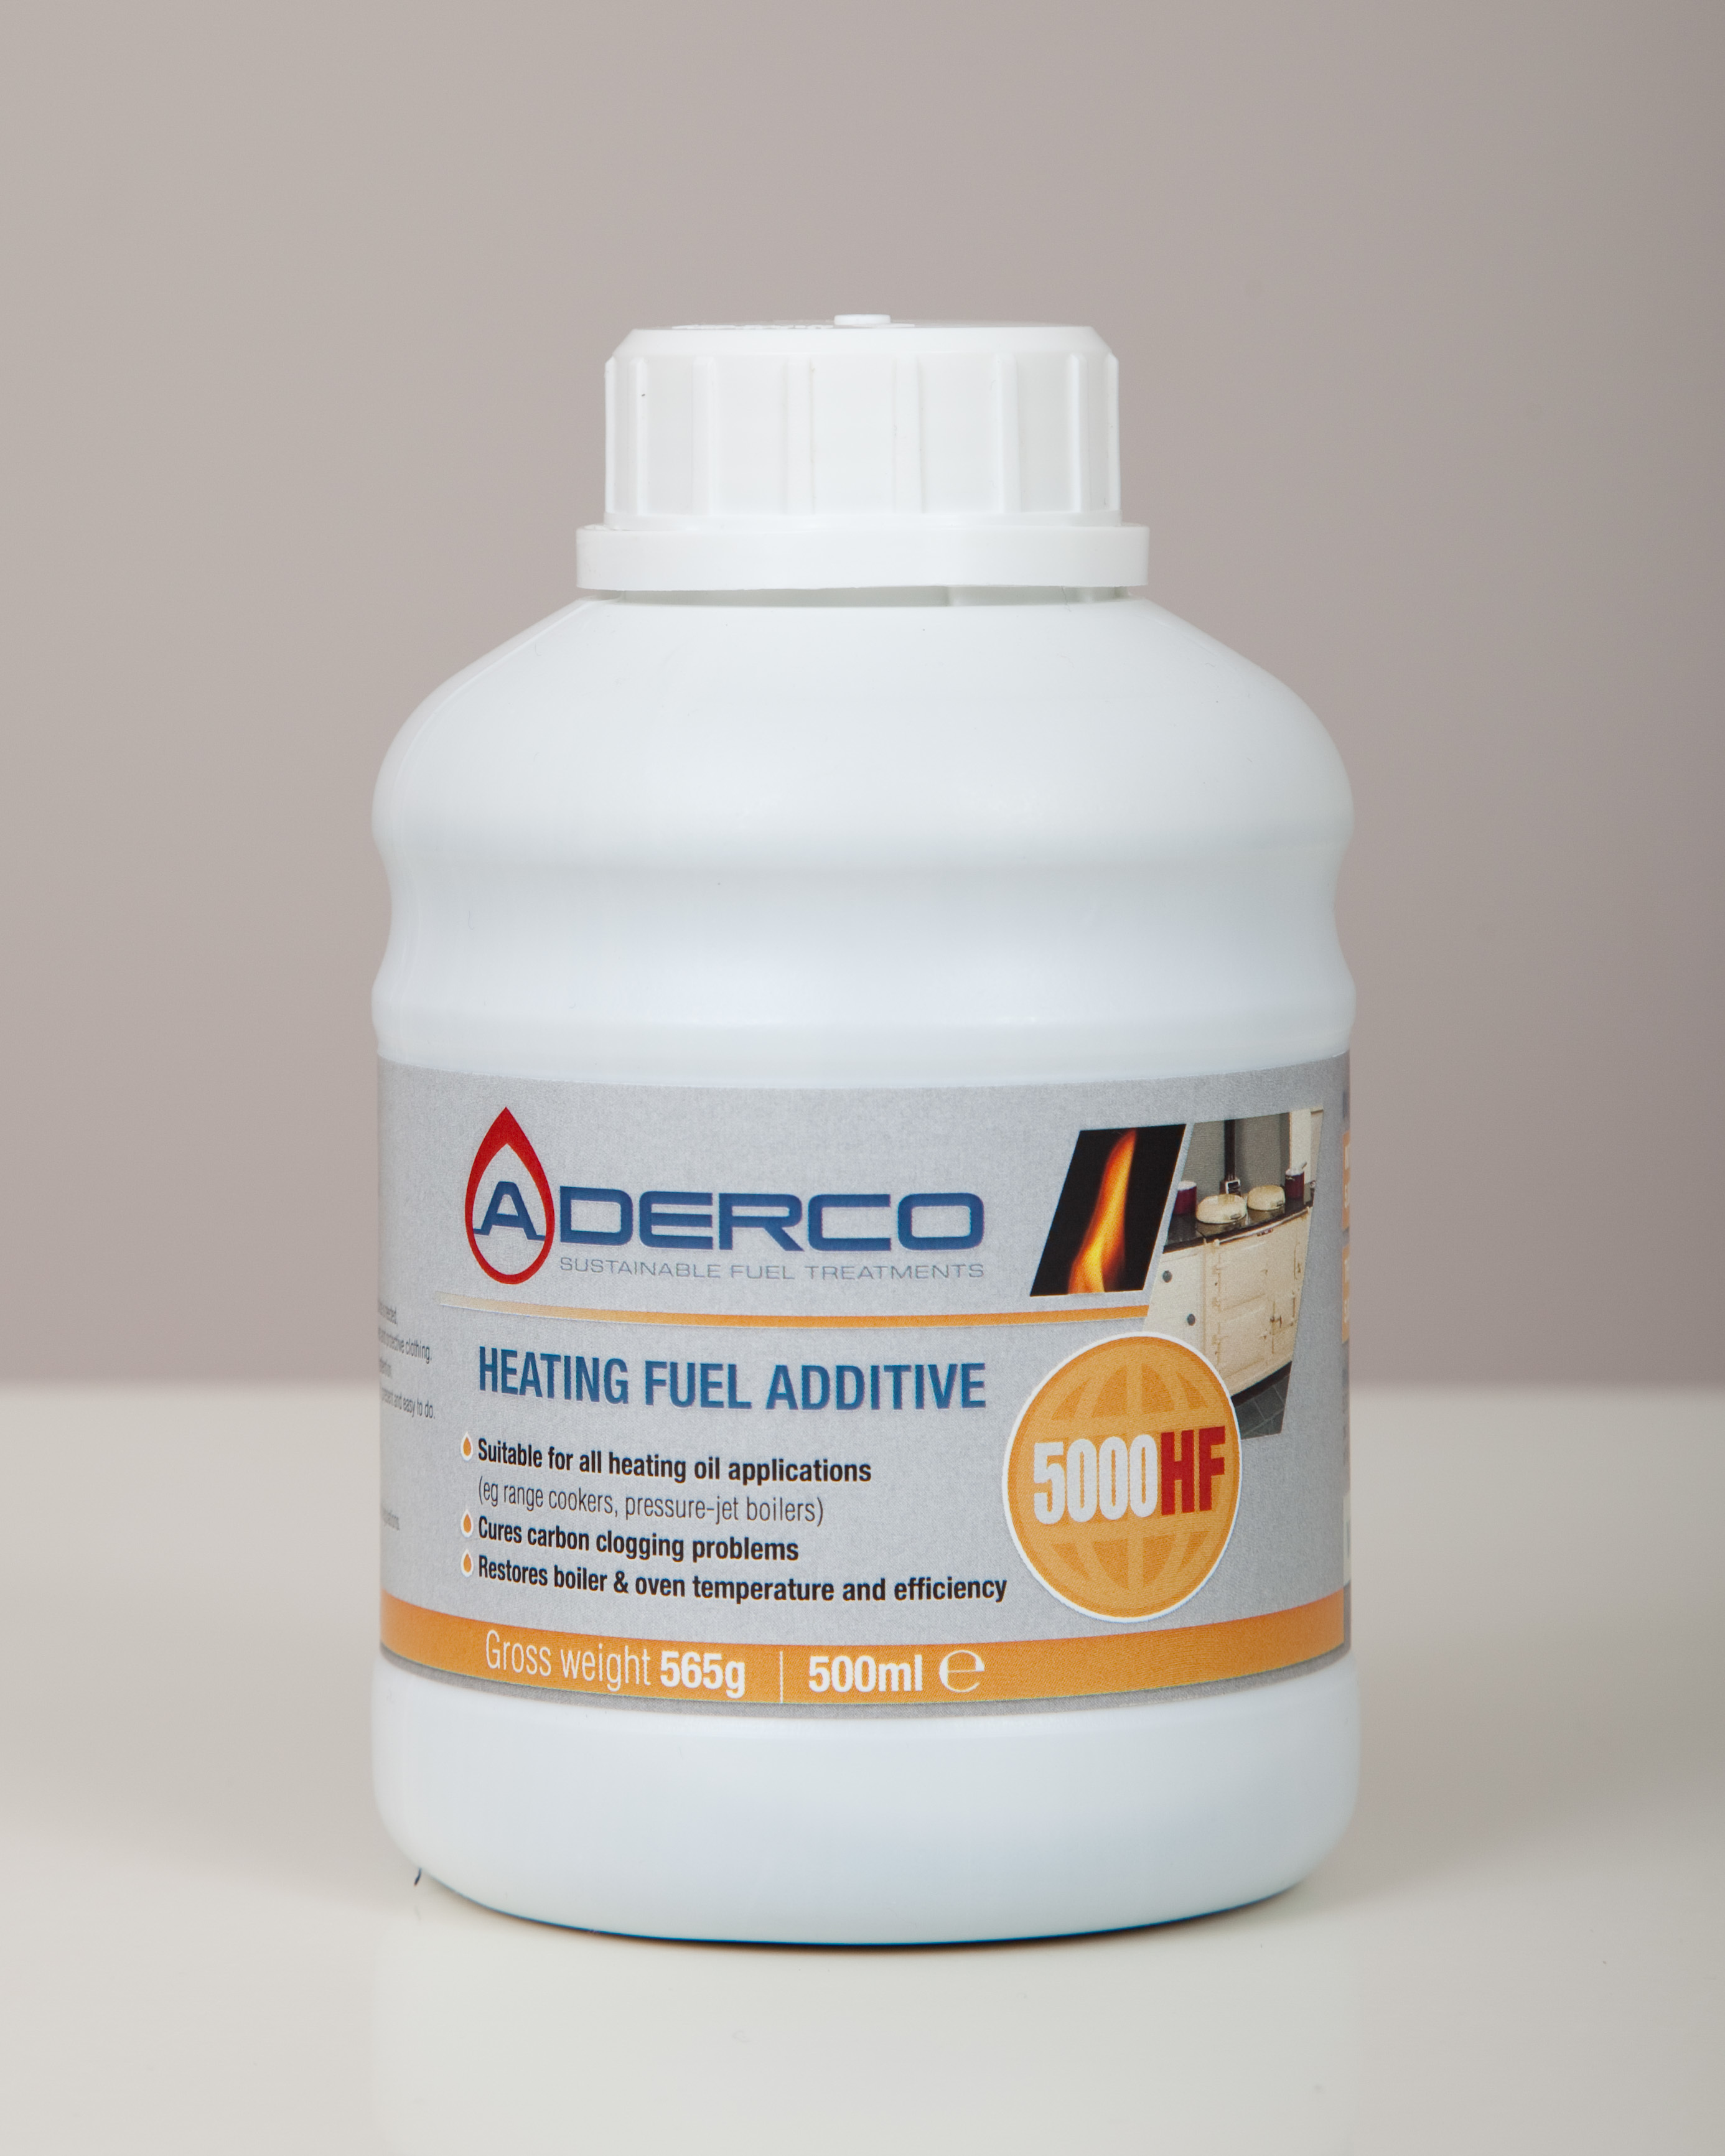 Aderco 5000 Heating Fuel Additive 1/2 Litre AD5000-05